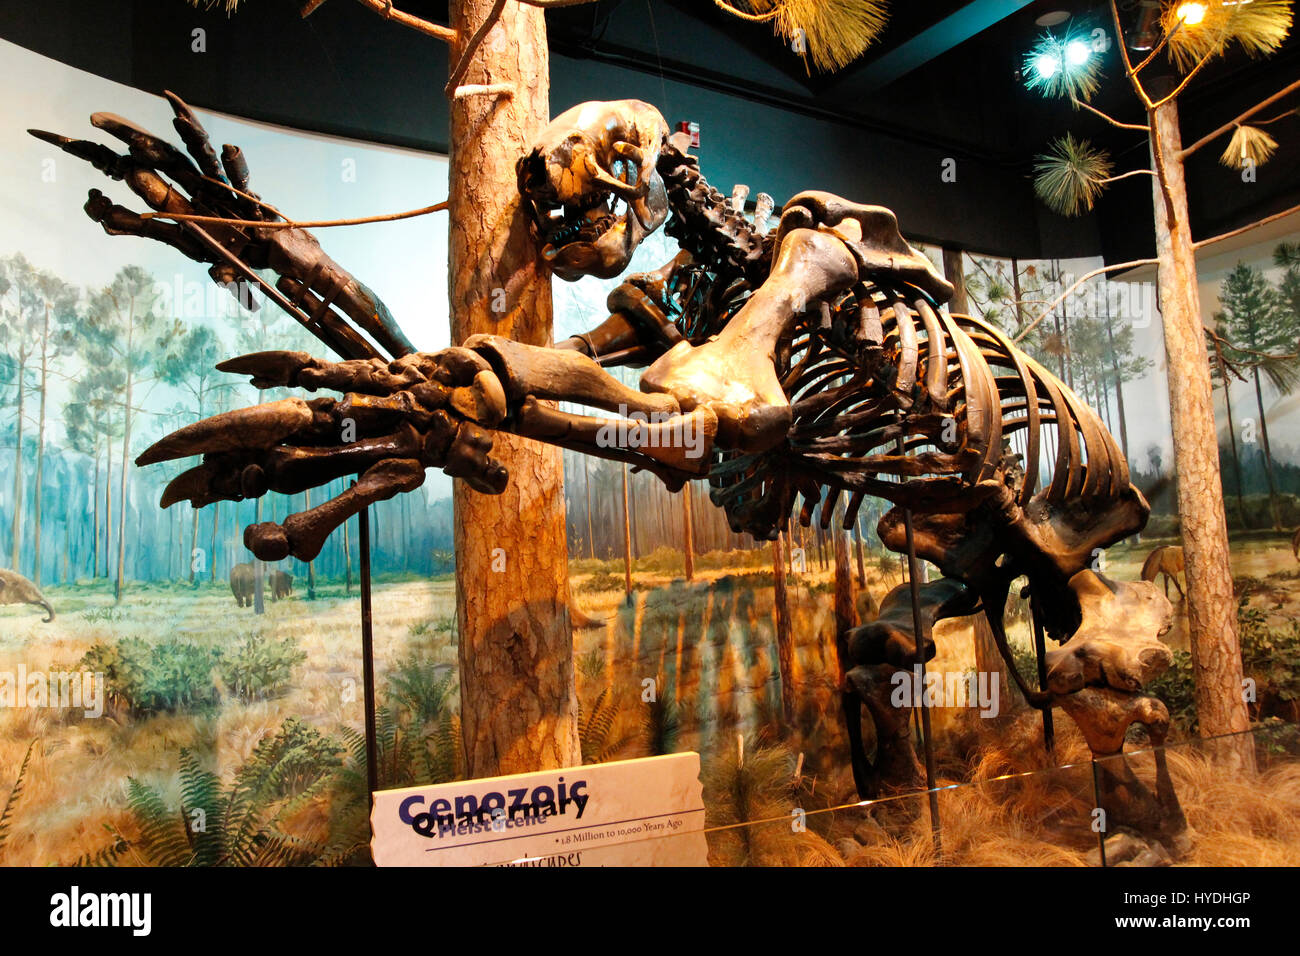 North Carolina museum of natural science Raleigh - Stock Image